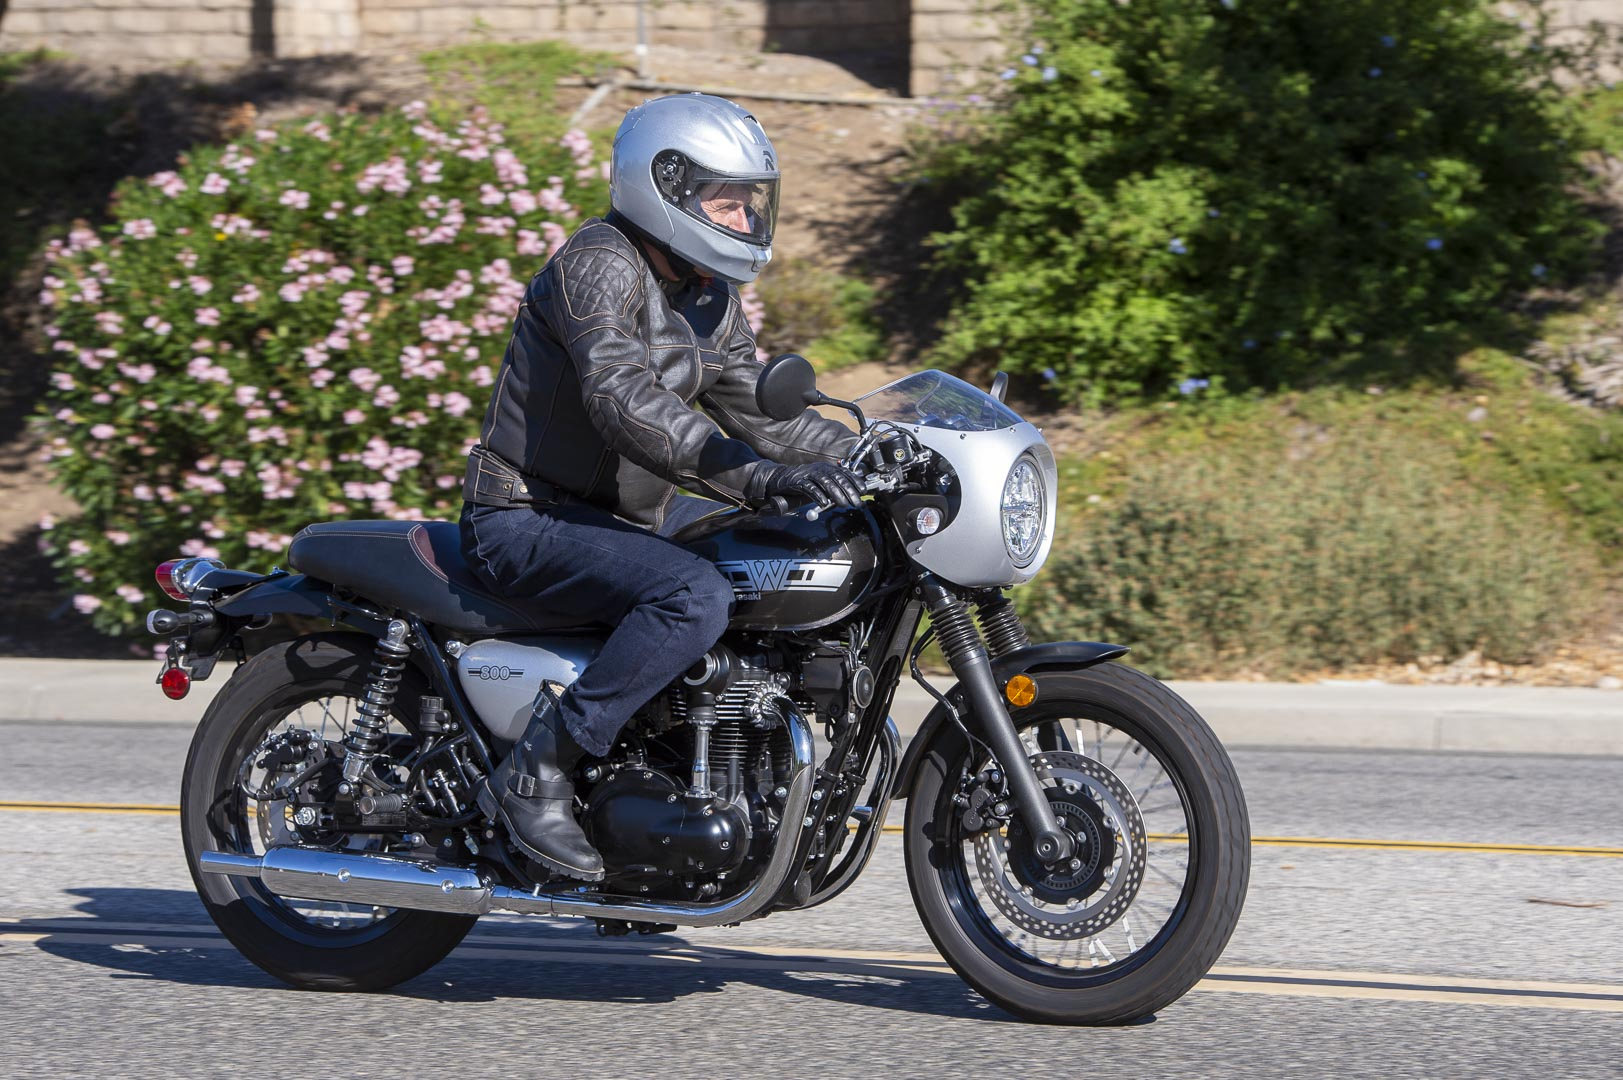 2019 Kawasaki W2 Cafe Review - Price